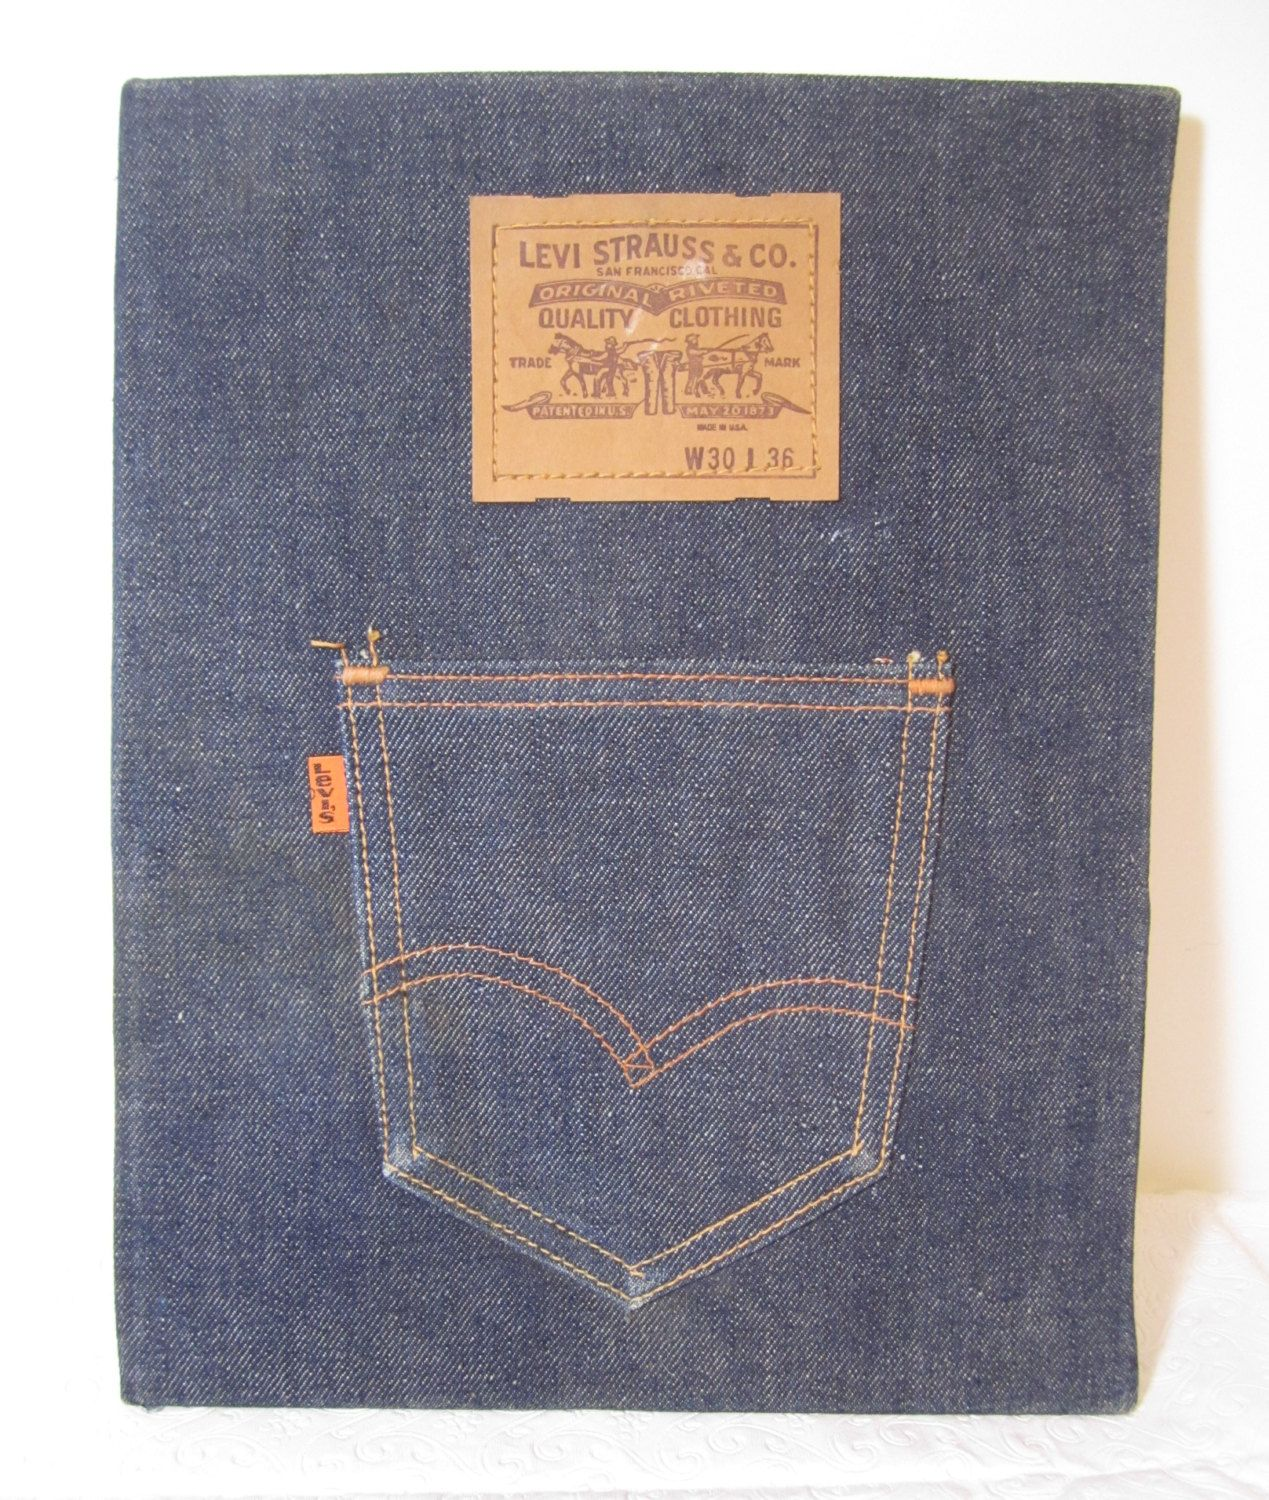 d8ef6e6a Denim Clipboard, Levi Strauss Notebook, Jeans Folder, Vintage Levi's  Clipboard, Blue Jean Notebook, 70's Orange Tab Levi's , Denim Clipboard by  ...